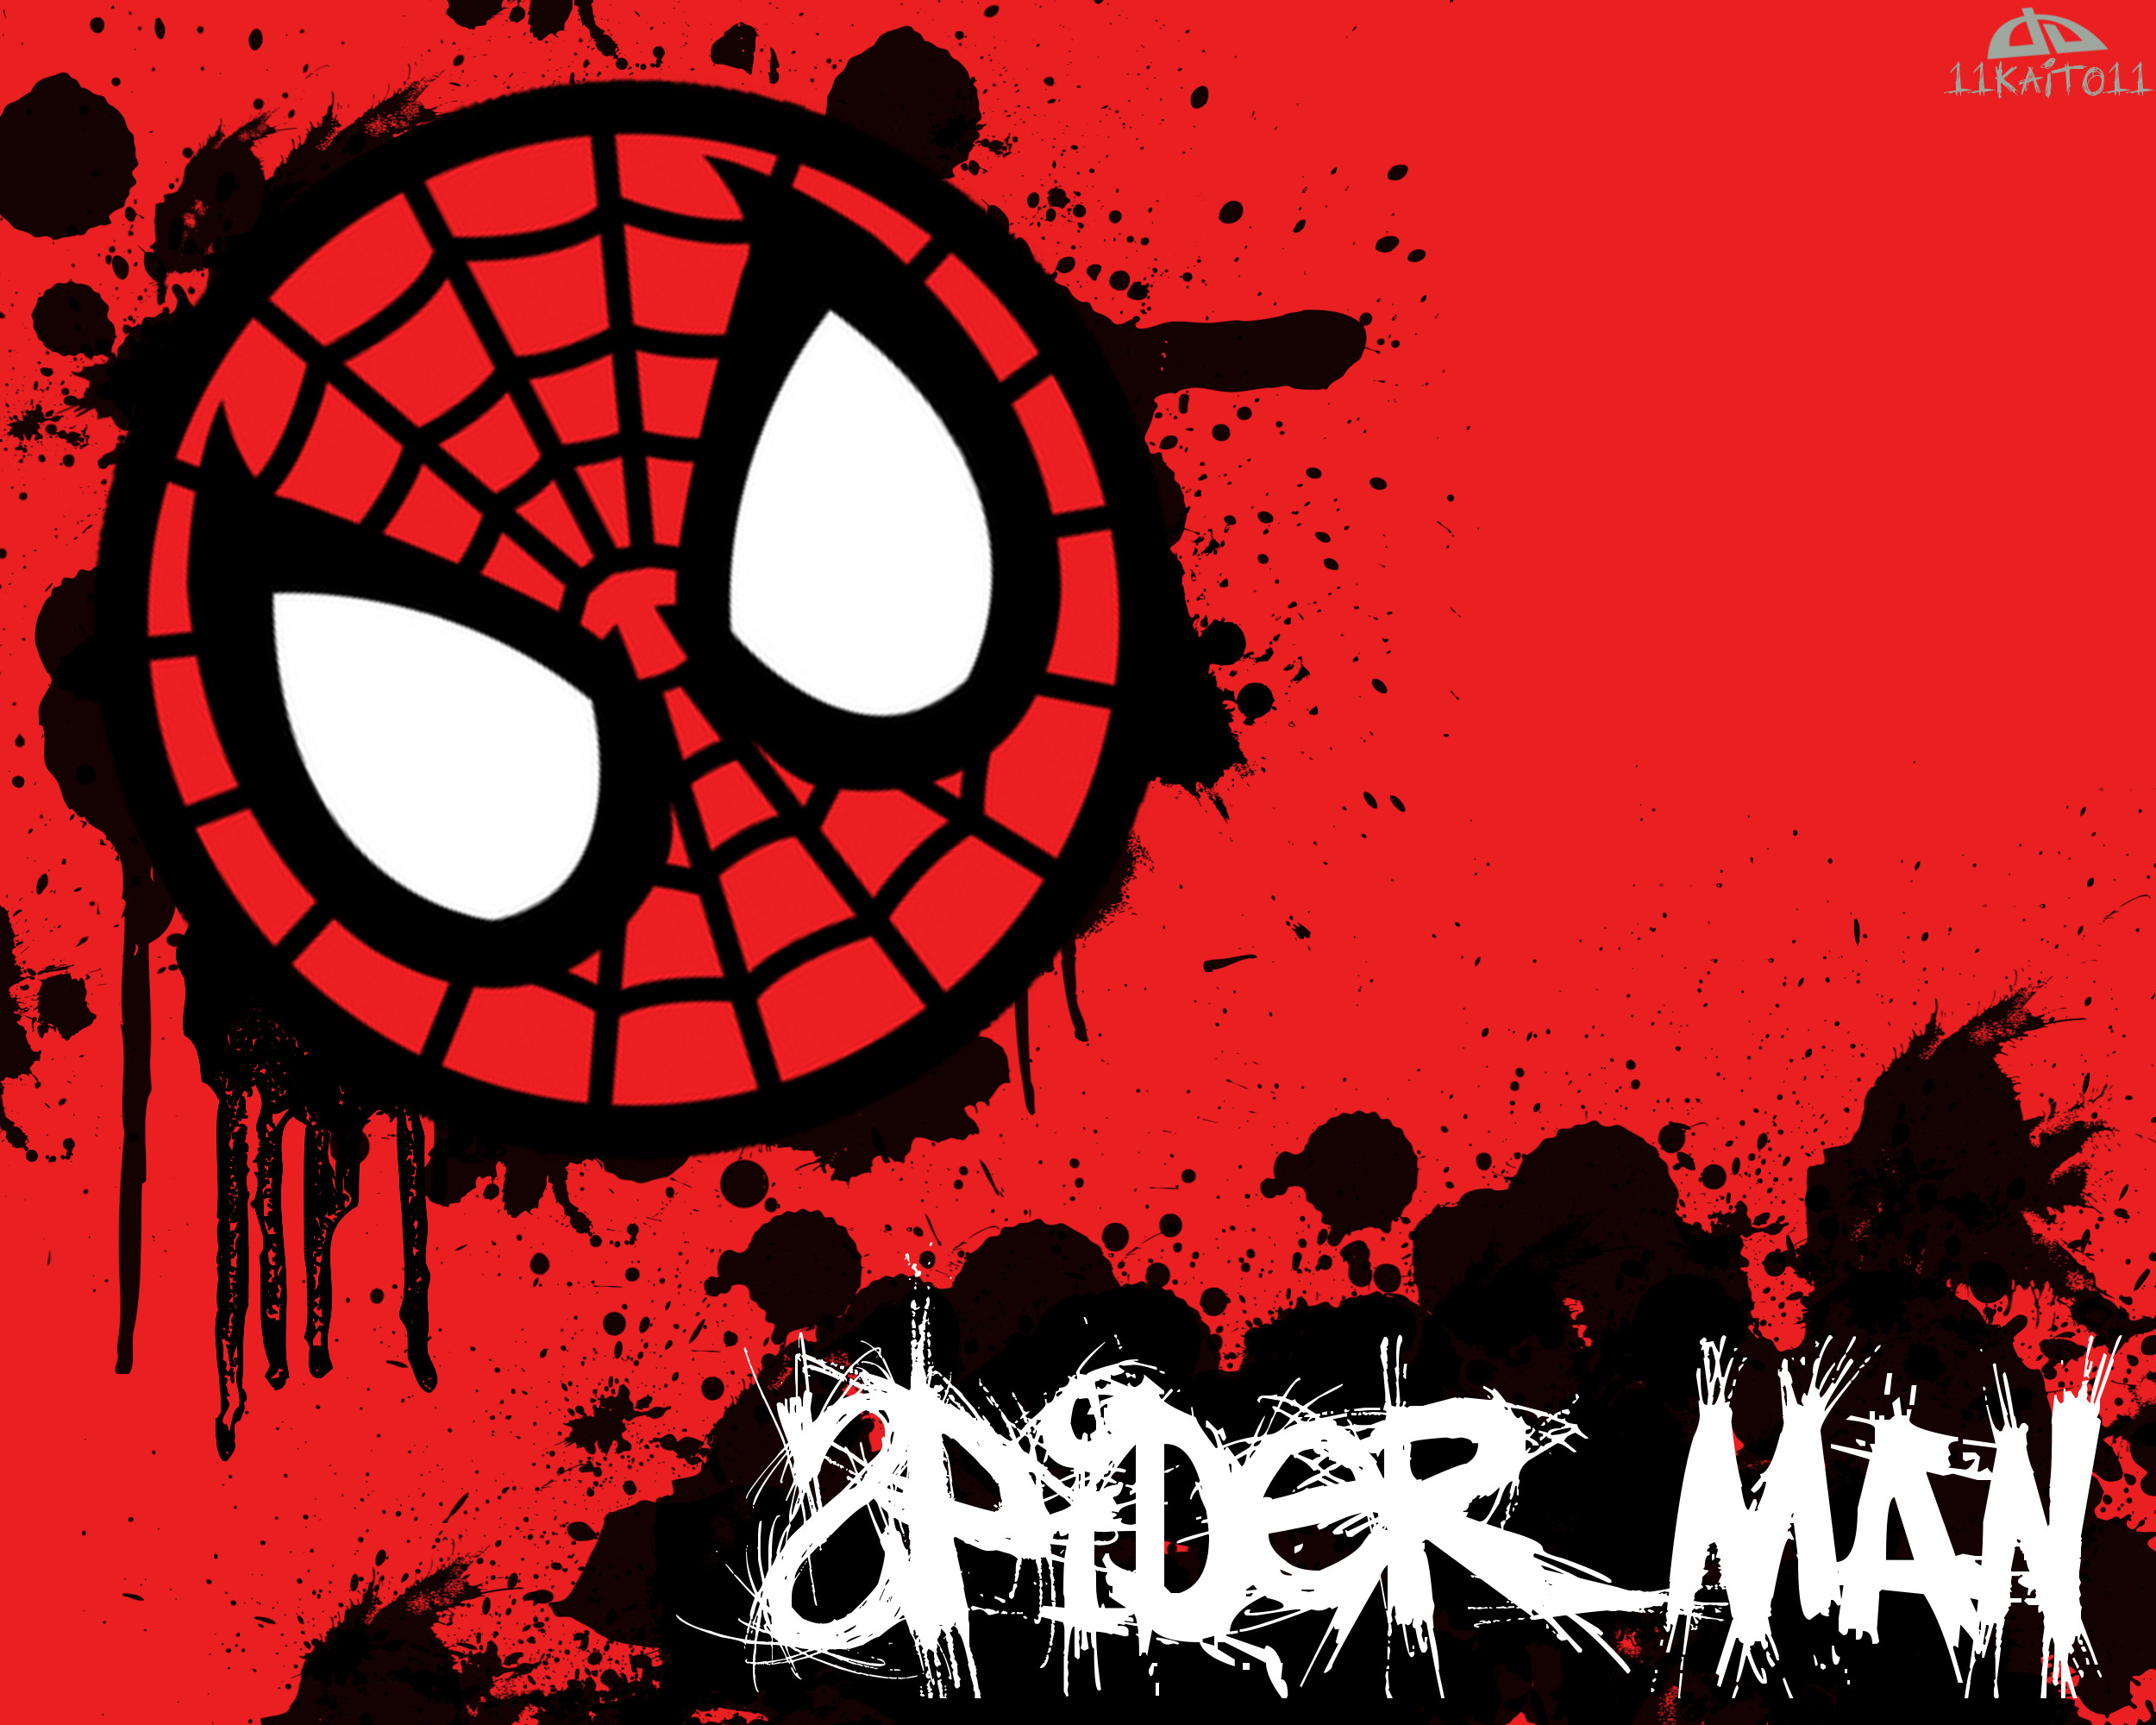 … Spider-Man (Wallpaper 3) by 11kaito11